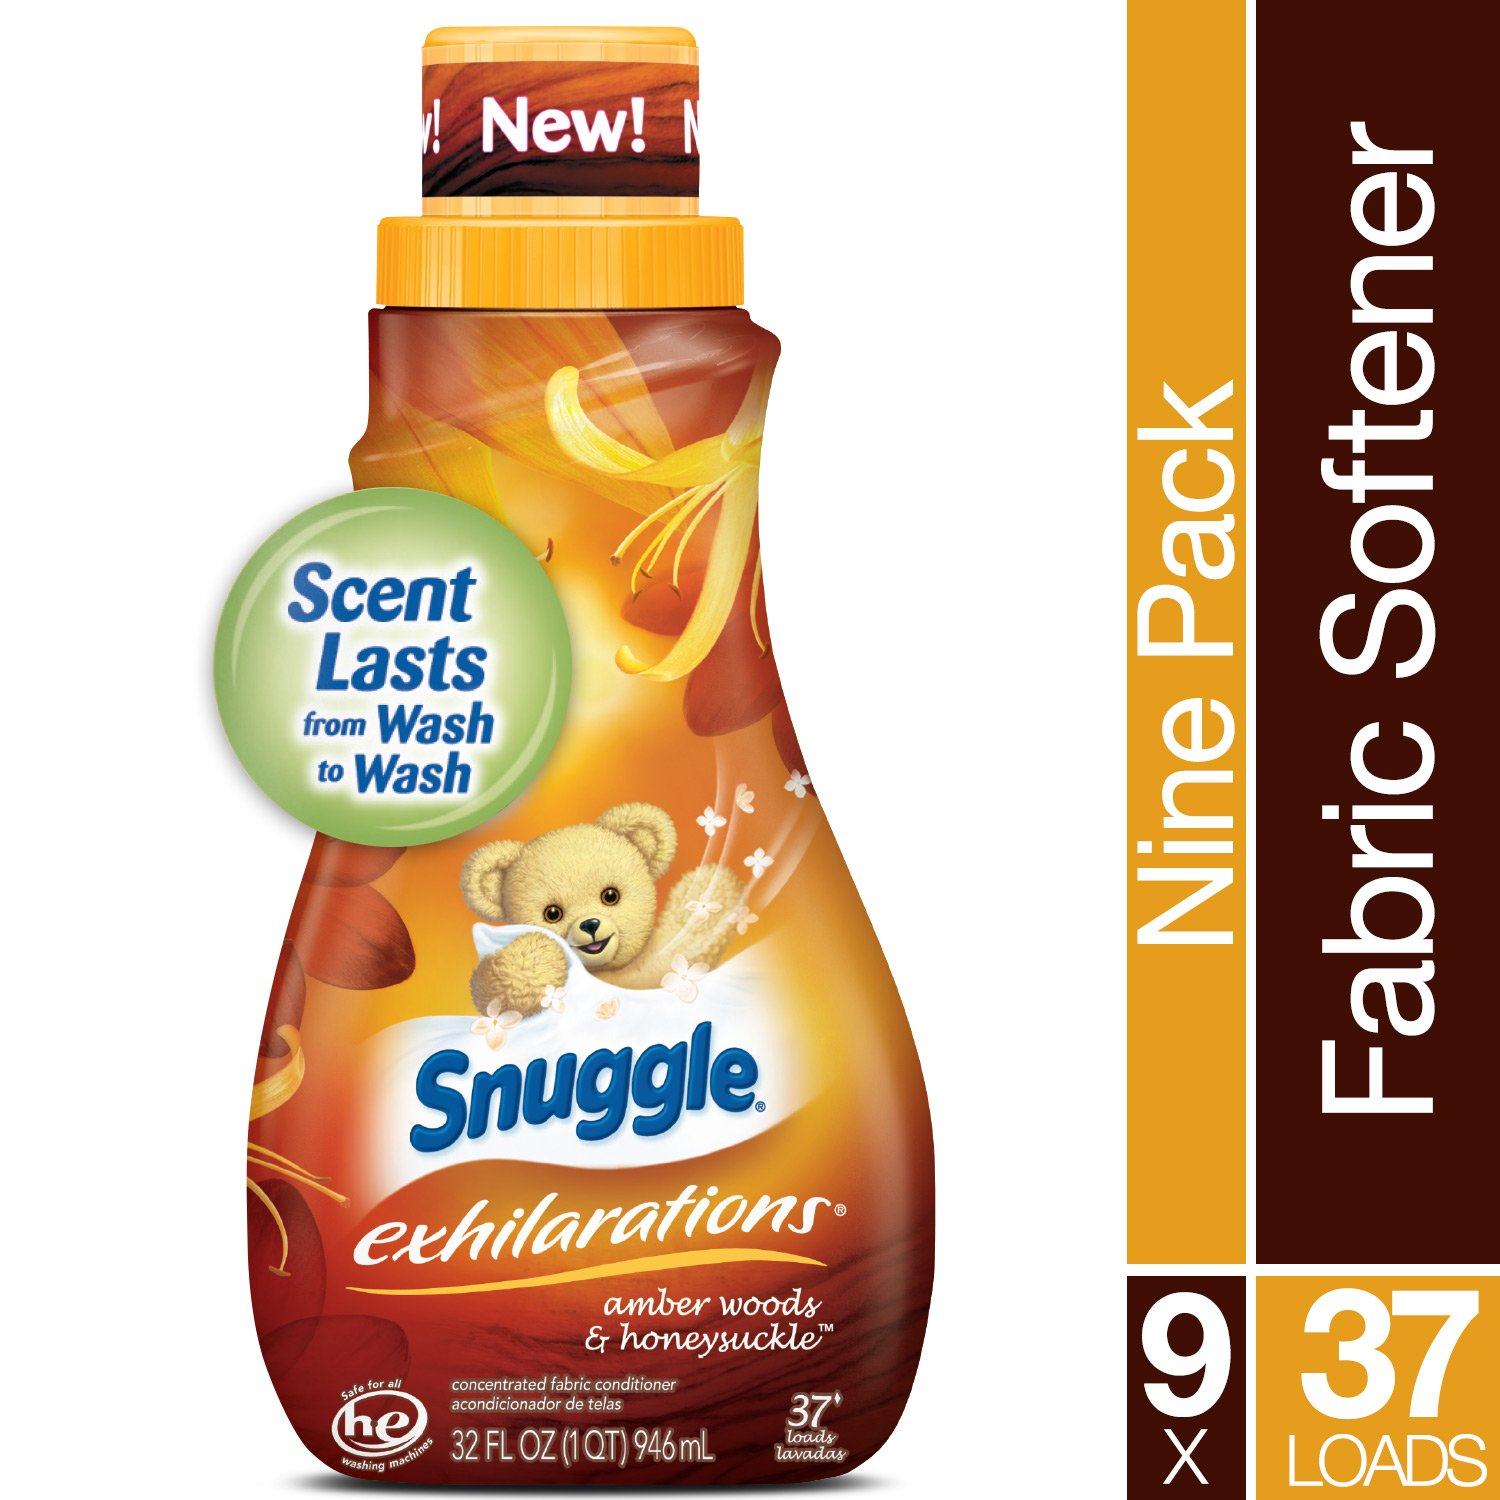 Snuggle Exhilarations Liquid Fabric Softener, Amber Woods & Honeysuckle, 32 Fluid Ounces (Pack of 9) by Snuggle (Image #3)